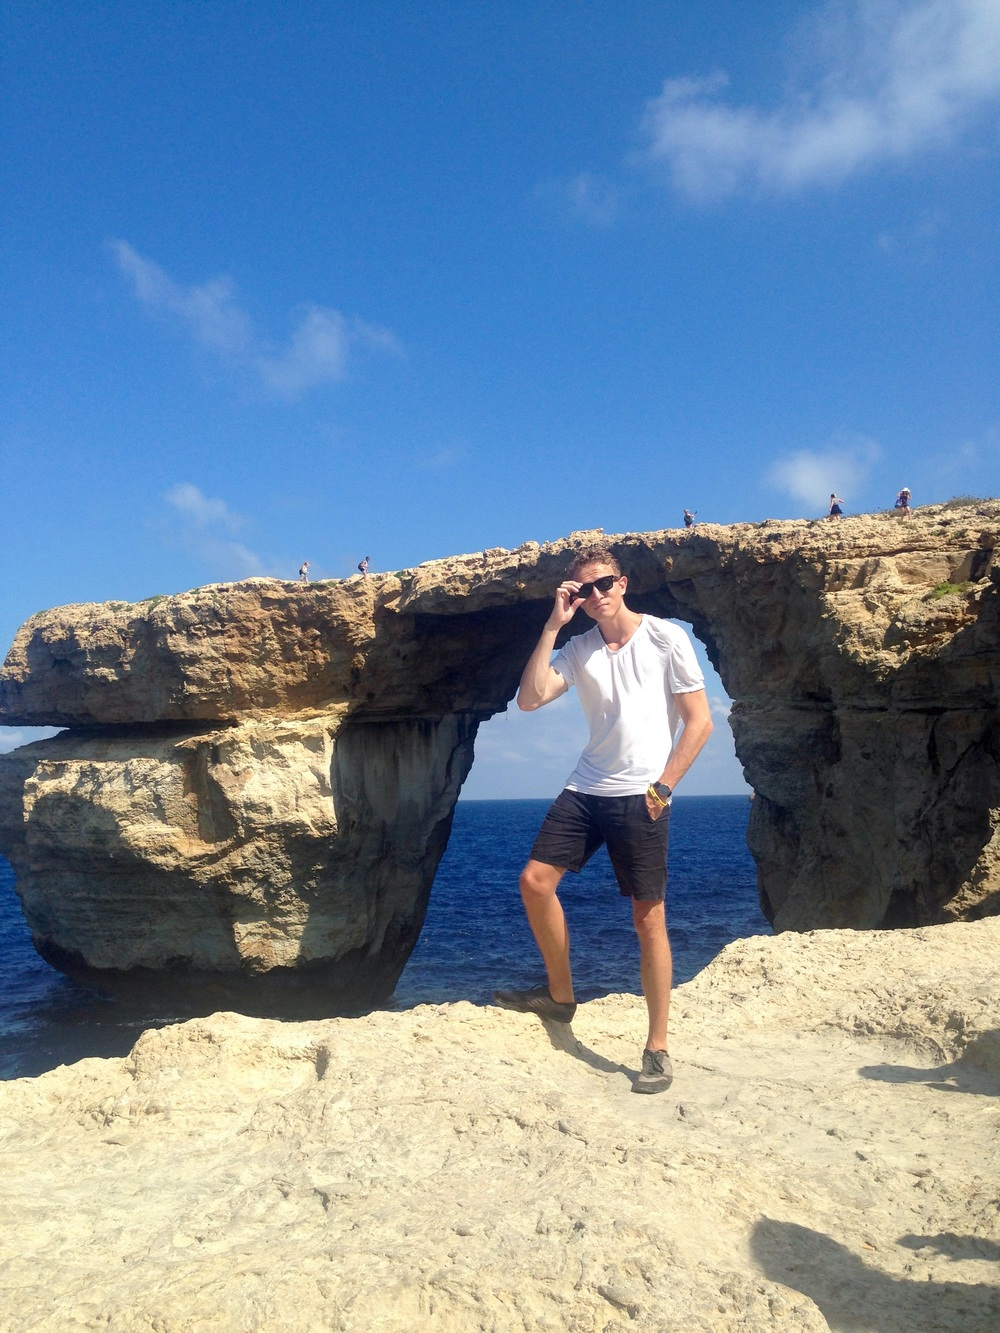 Me, posing by the Azure Window on the island of Gozo.